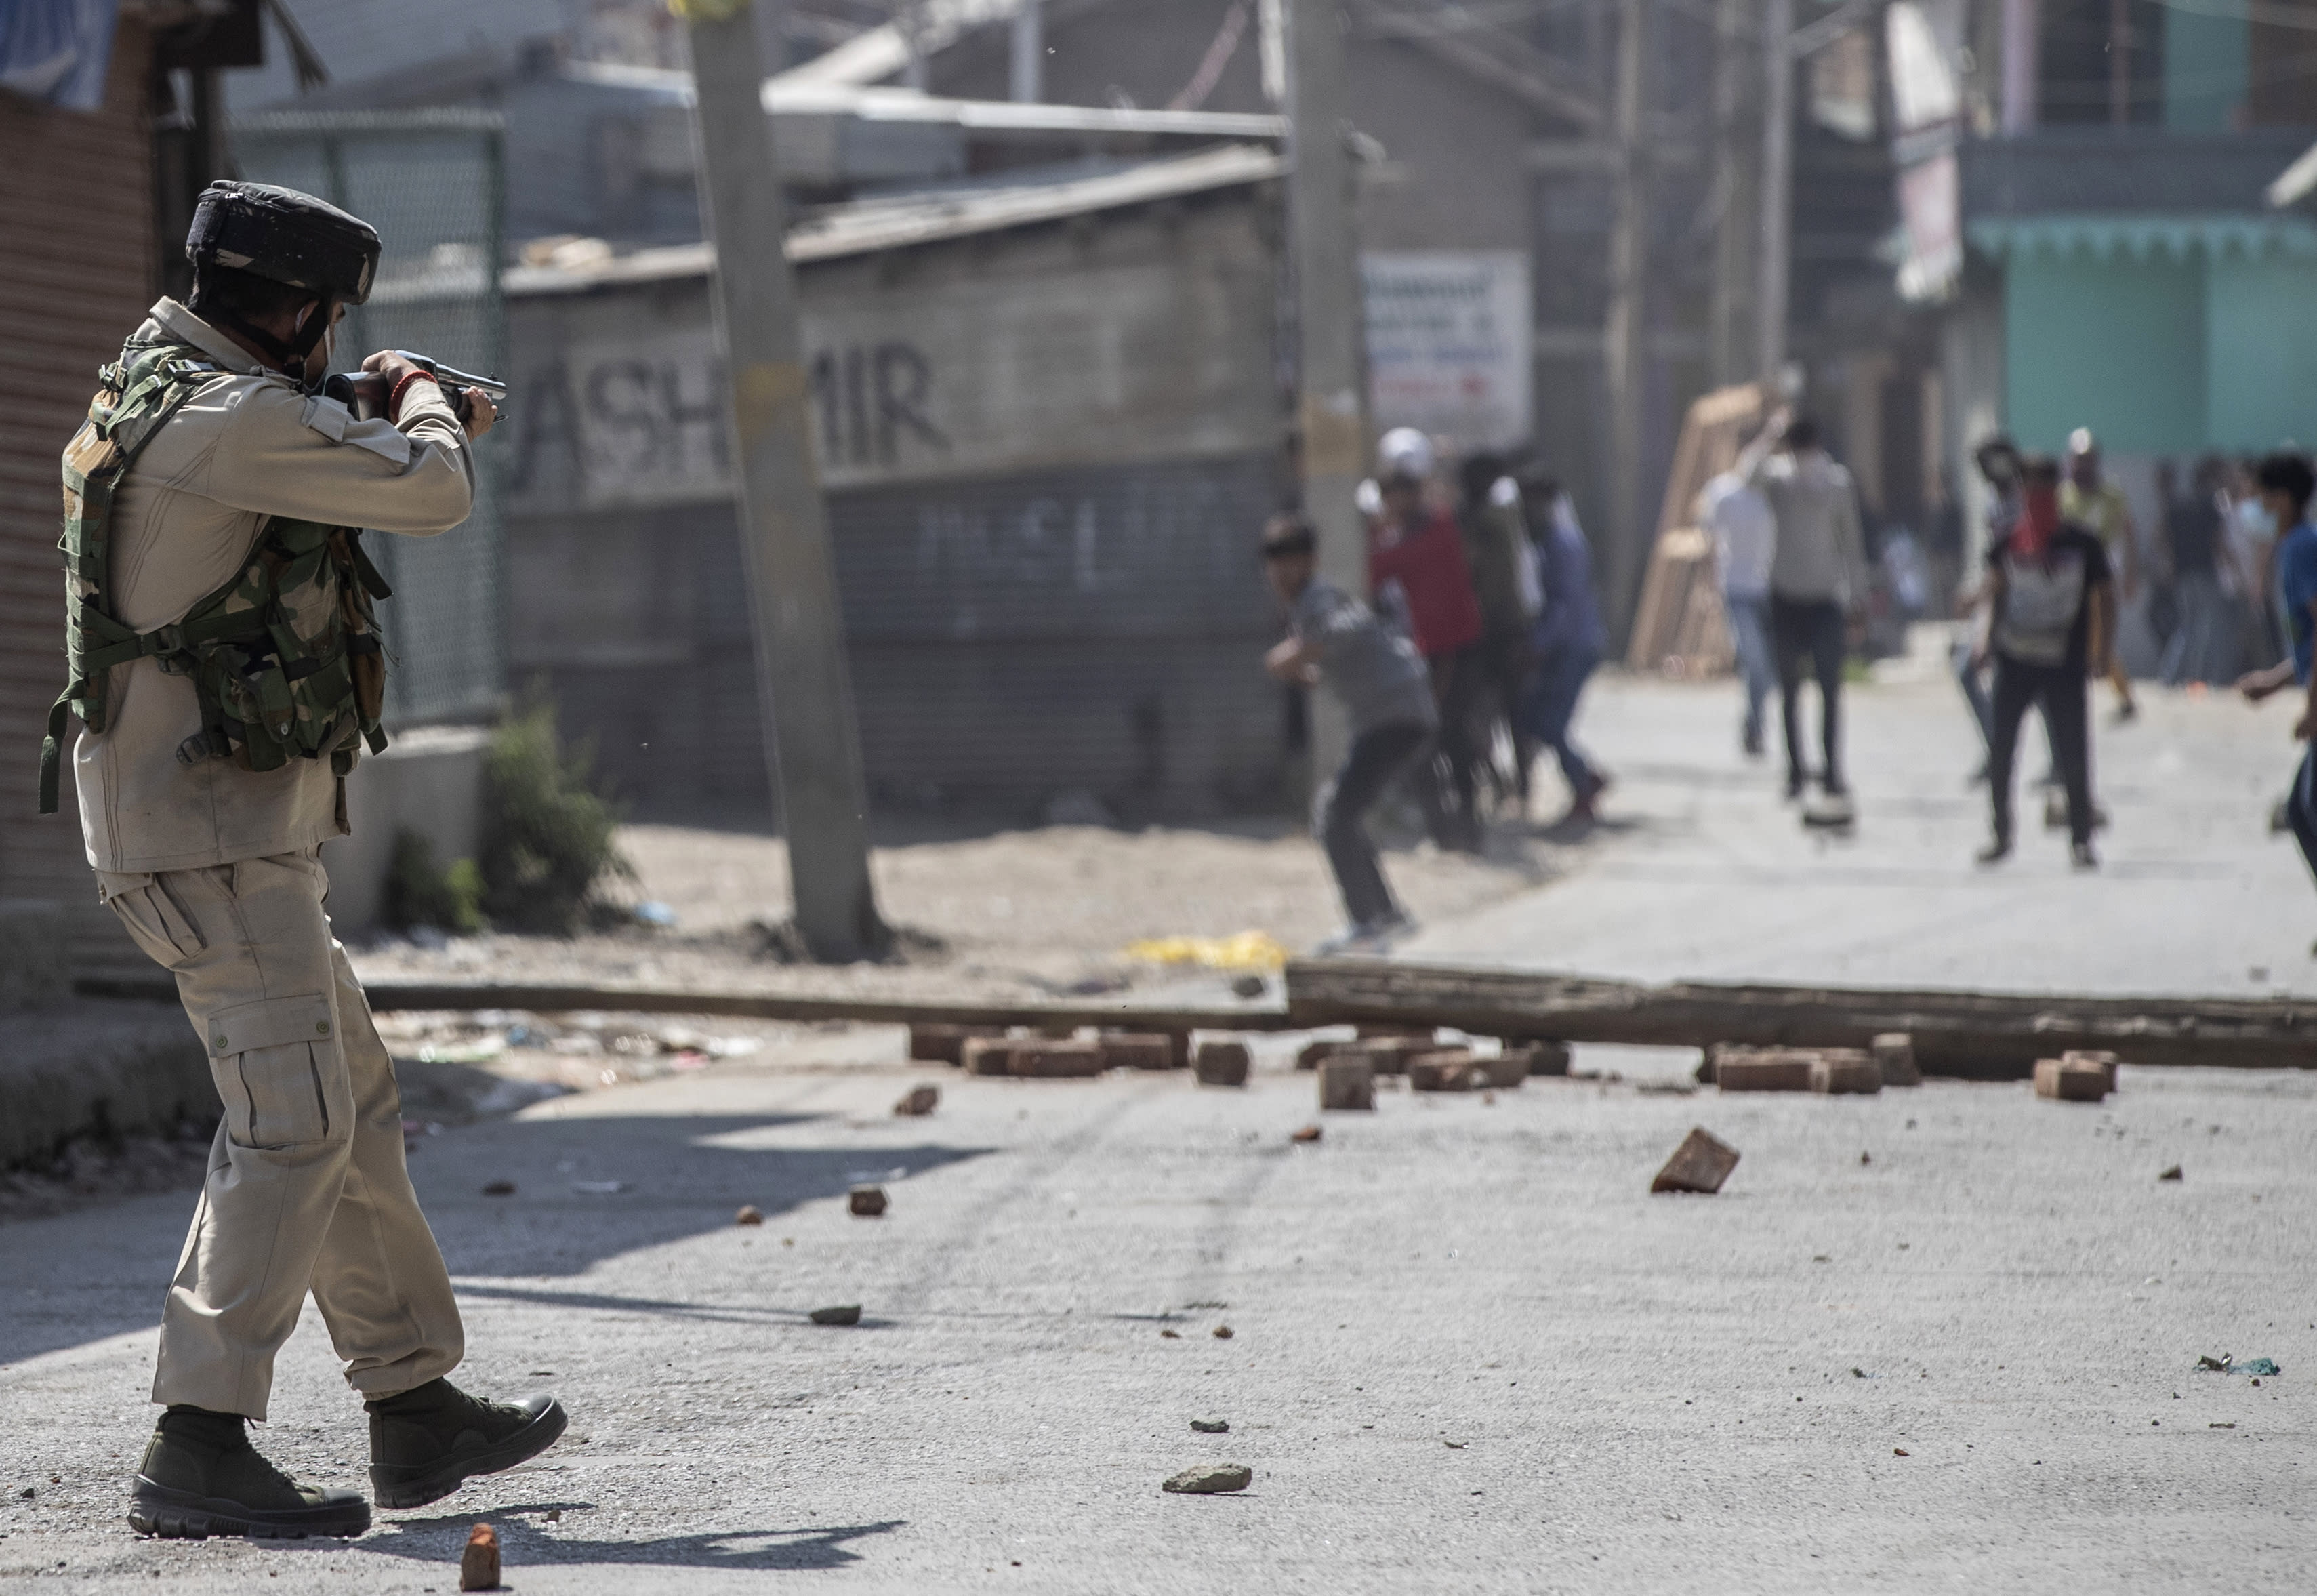 An Indian paramilitary soldier aims his pellet gun on Kashmiri protesters marching on the streets in solidarity with rebels engaged in a gunbattle with soldiers, in Srinagar, Indian controlled Kashmir, Thursday, Sept. 17, 2020. The gunfight erupted shortly after scores of counterinsurgency police and soldiers launched an operation based on a tip about the presence of militants in a Srinagar neighborhood, Pankaj Singh, an Indian paramilitary spokesman, said. (AP Photo/Mukhtar Khan)